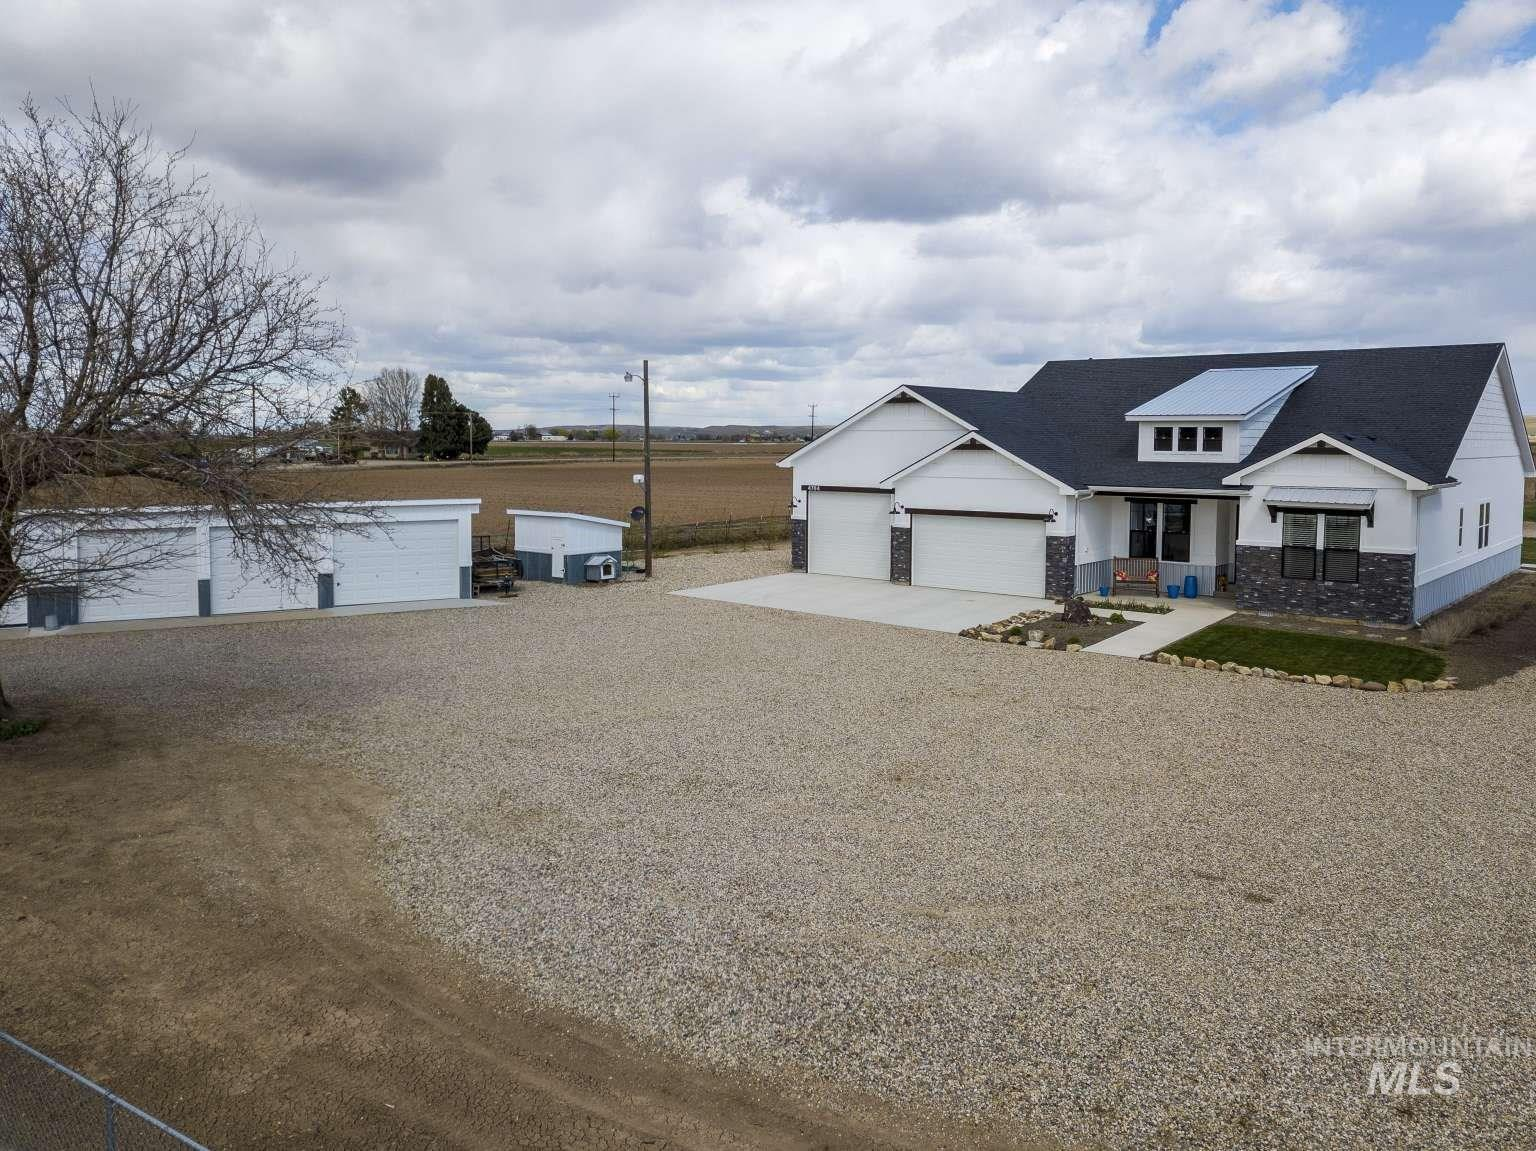 4764 W Idaho Blvd Property Photo - Emmett, ID real estate listing